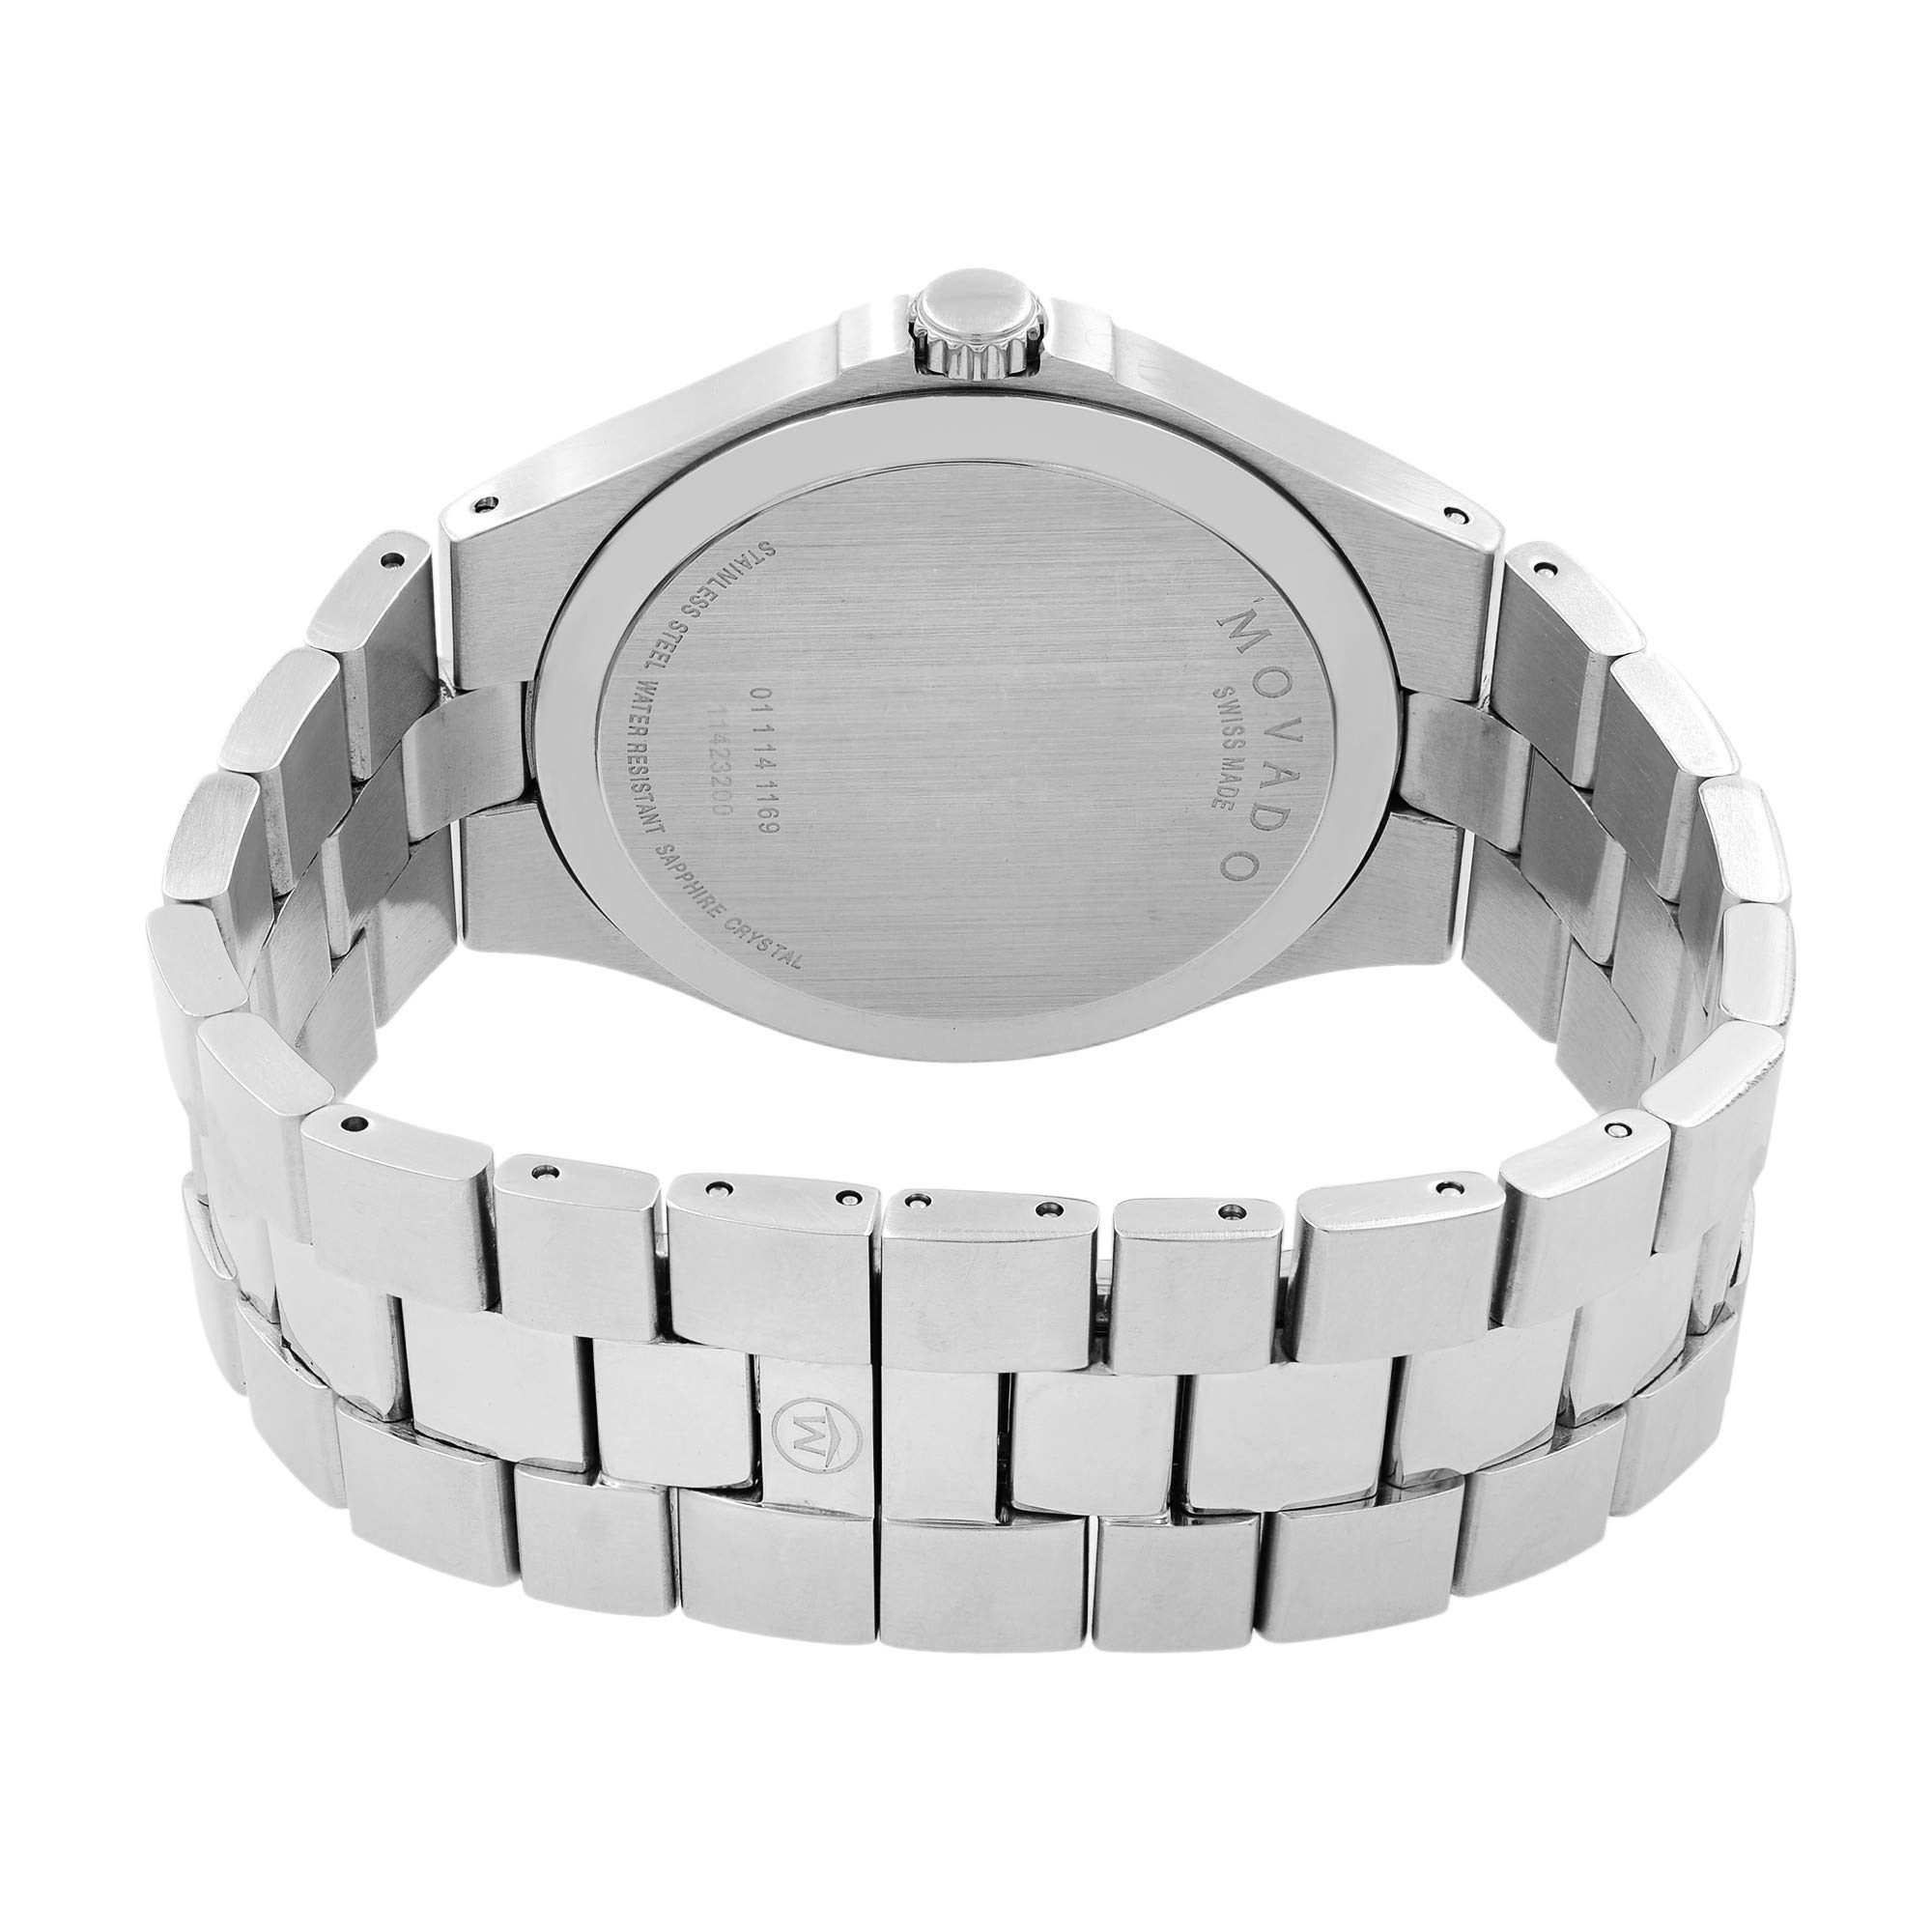 Movado Serio Quartz Male Watch 0606556 (Certified Pre-Owned) by Movado (Image #2)